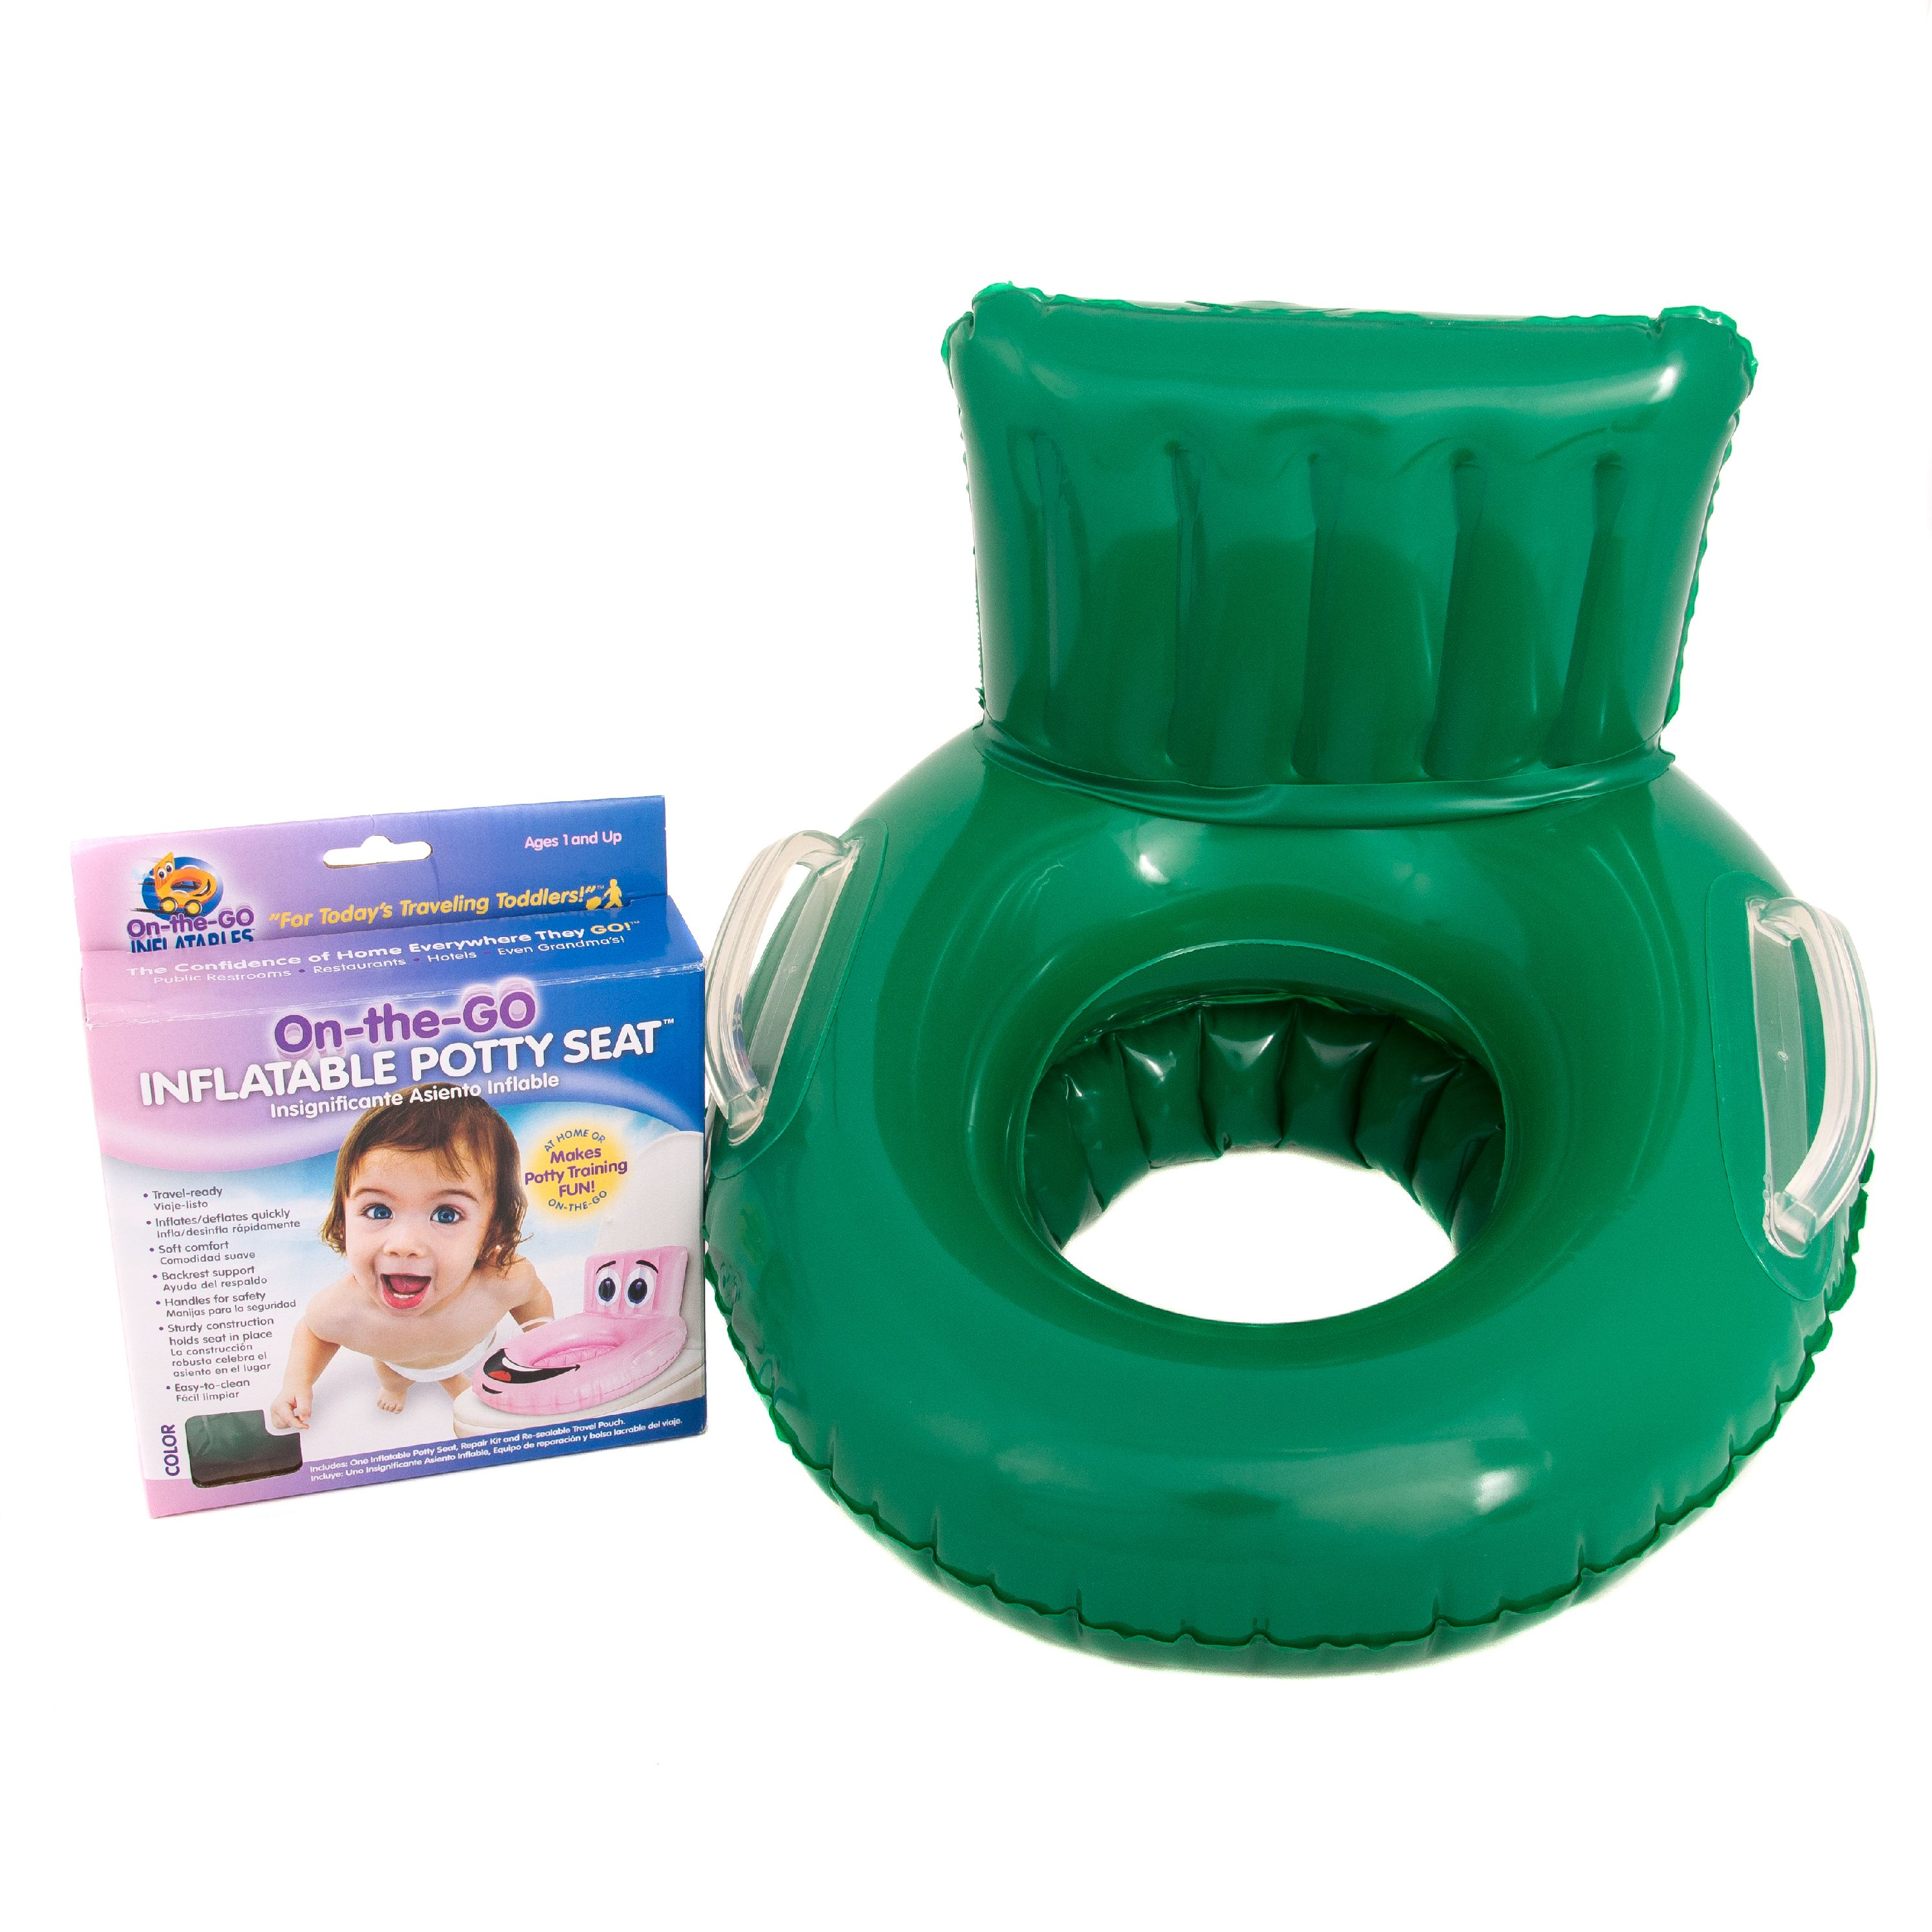 On the Go Inflatables Green Soft Inflatable Travel Potty Training Seat